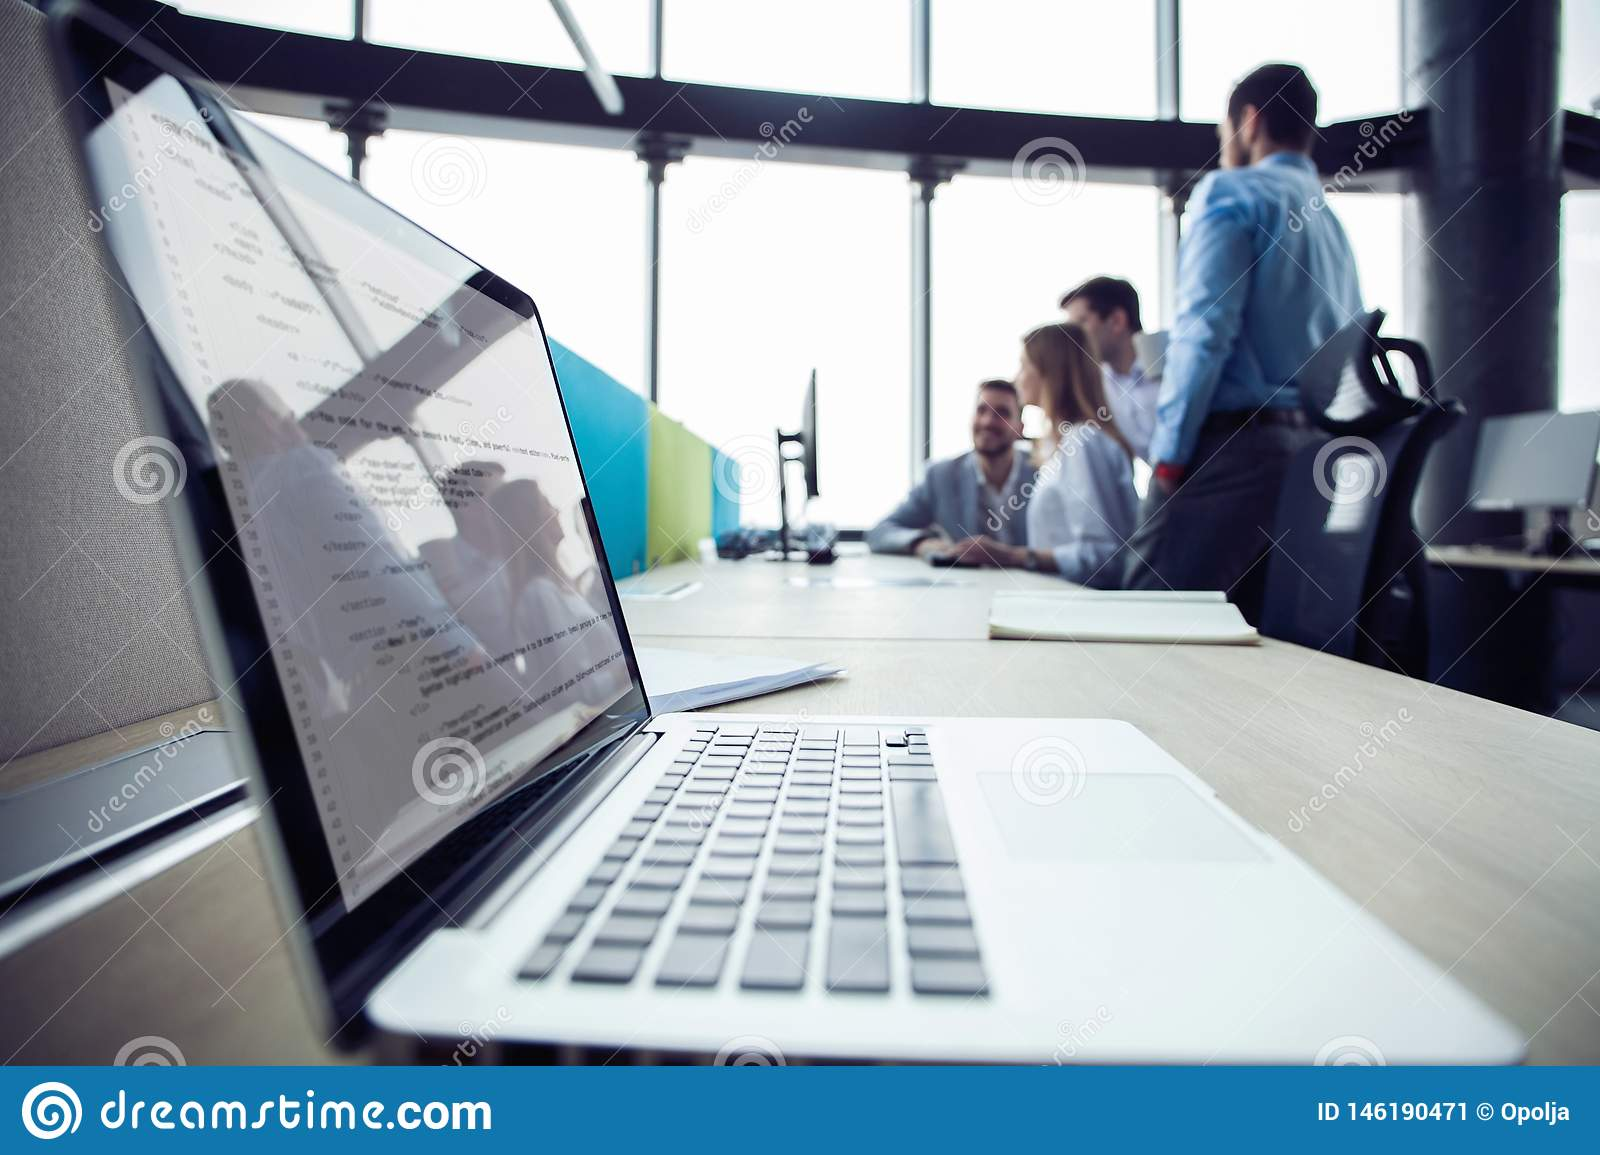 Close-up of workplace in modern office with business people behind. Colleagues meeting to discuss their future financial